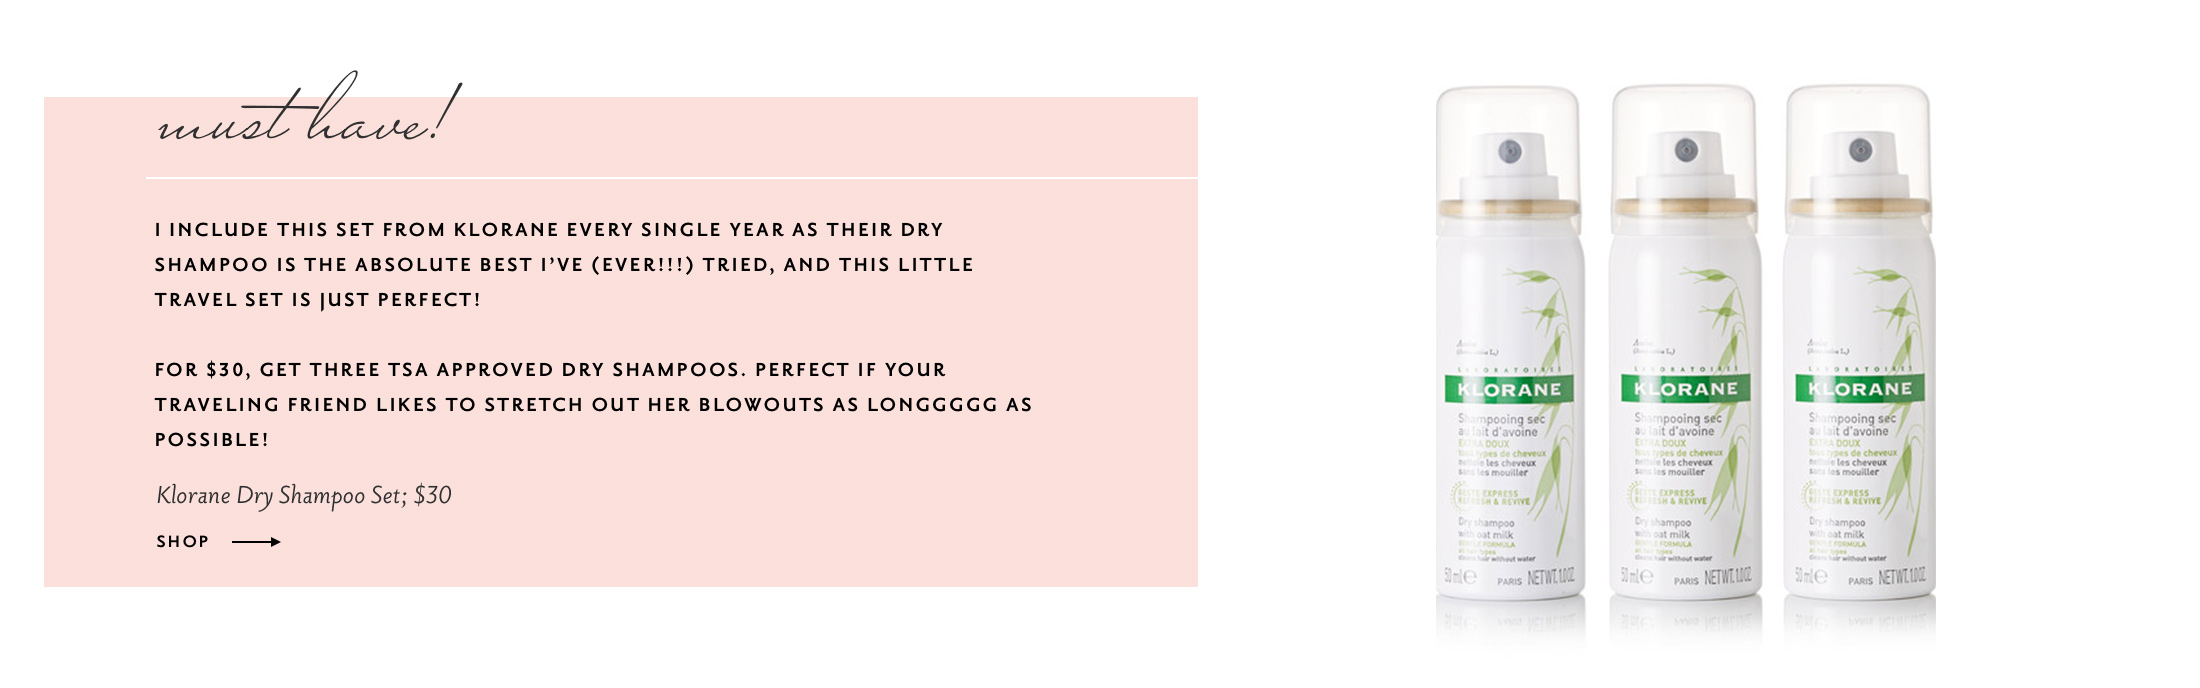 The Best GIfts for the Frequent Traveler: Klorane Dry Shampoo Set